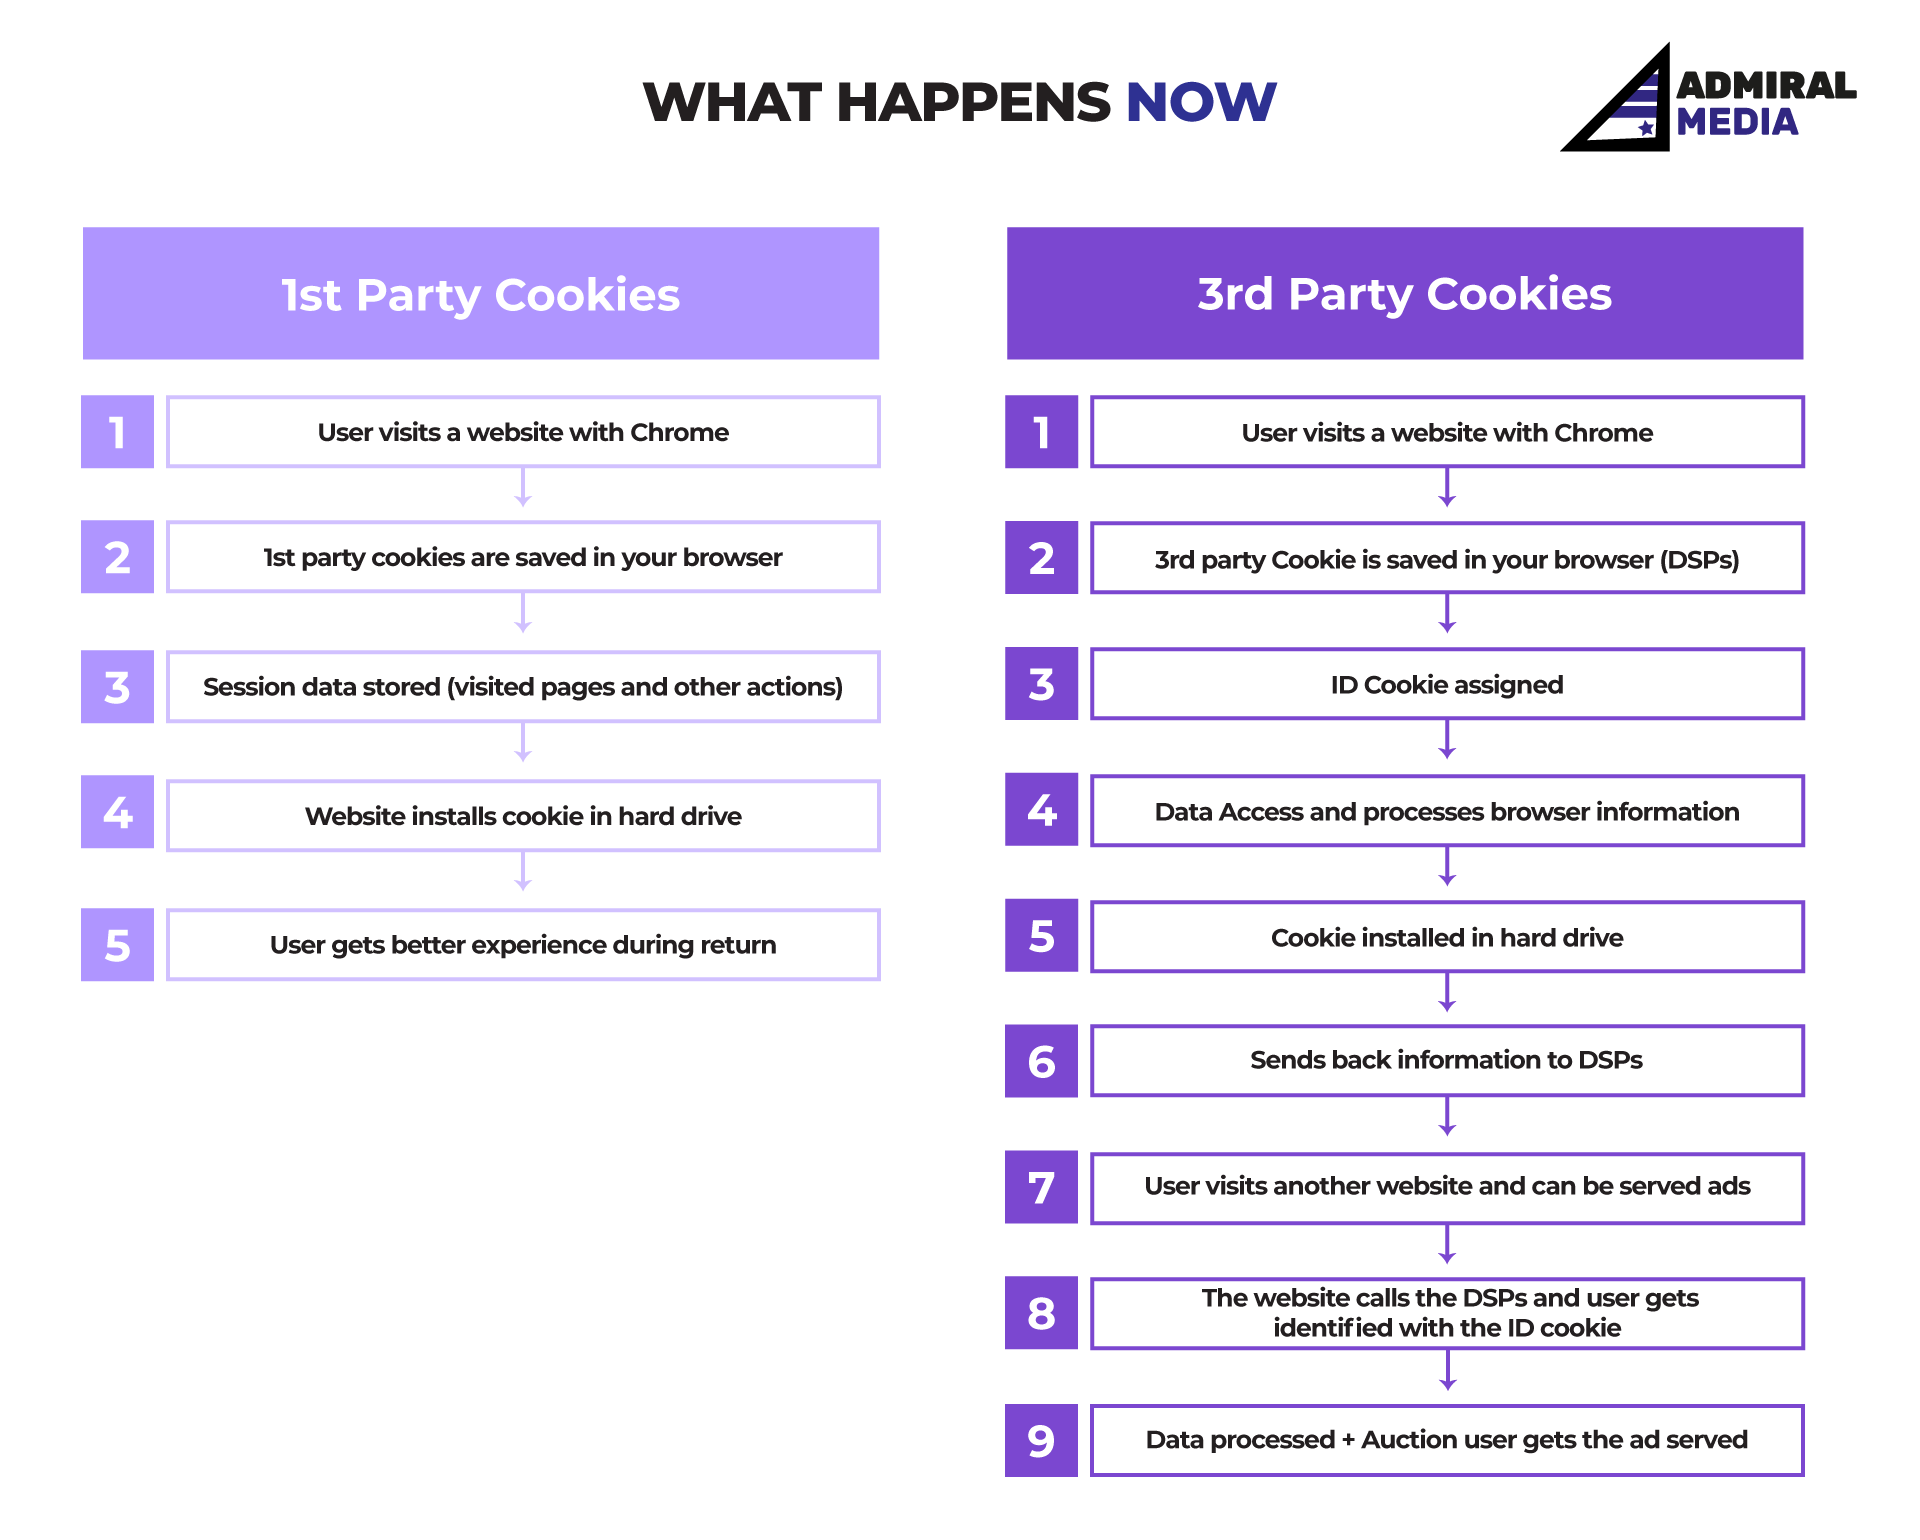 Google update: Deleting 3rd party cookies on Google Chrome by Admiral Media